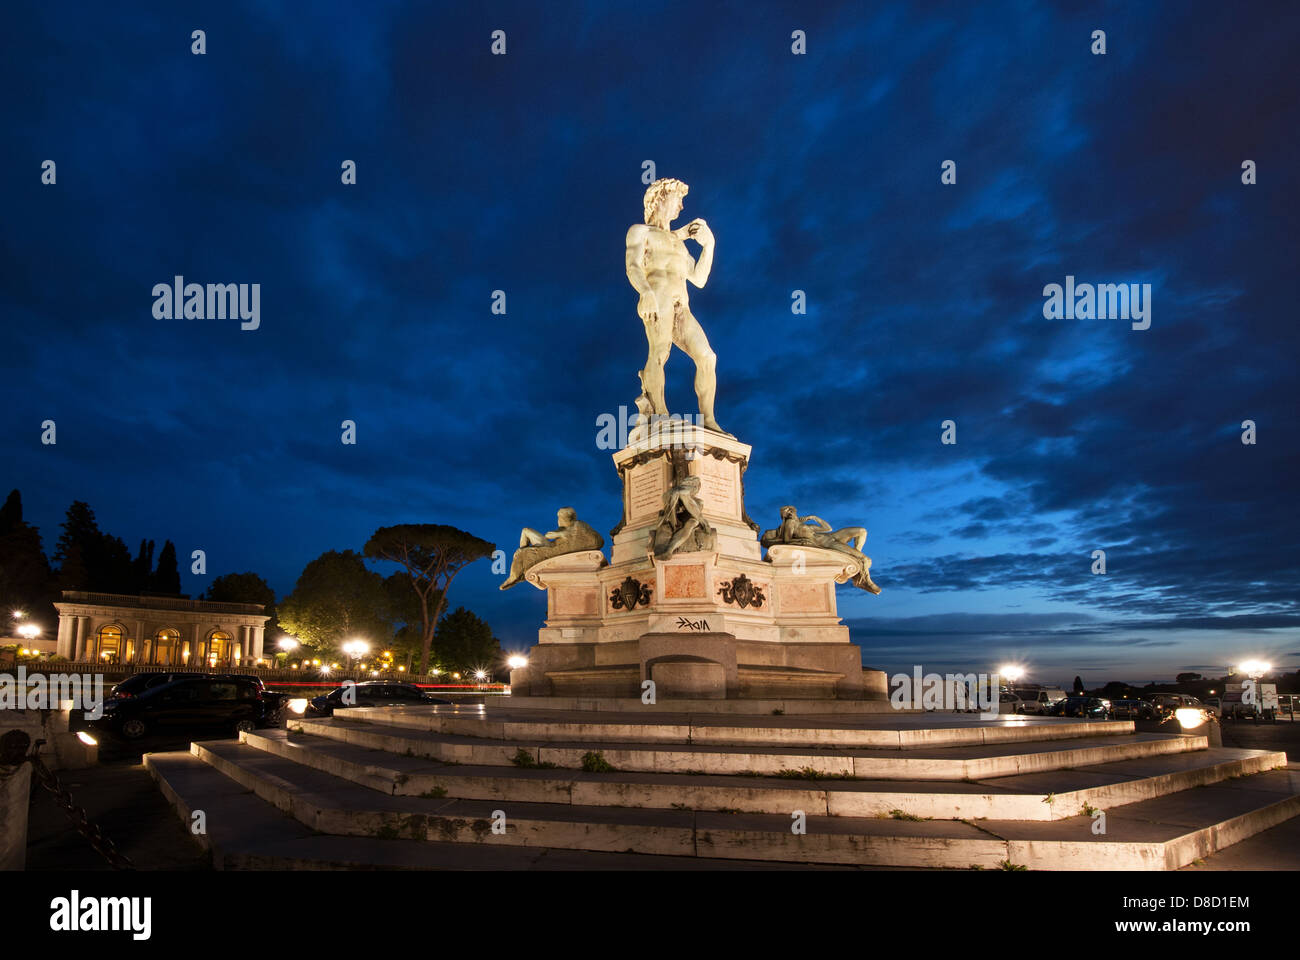 Copy of Michelangelo's David at, Piazzale Michelangelo, in, Florence, Tuscany, Italy - Stock Image